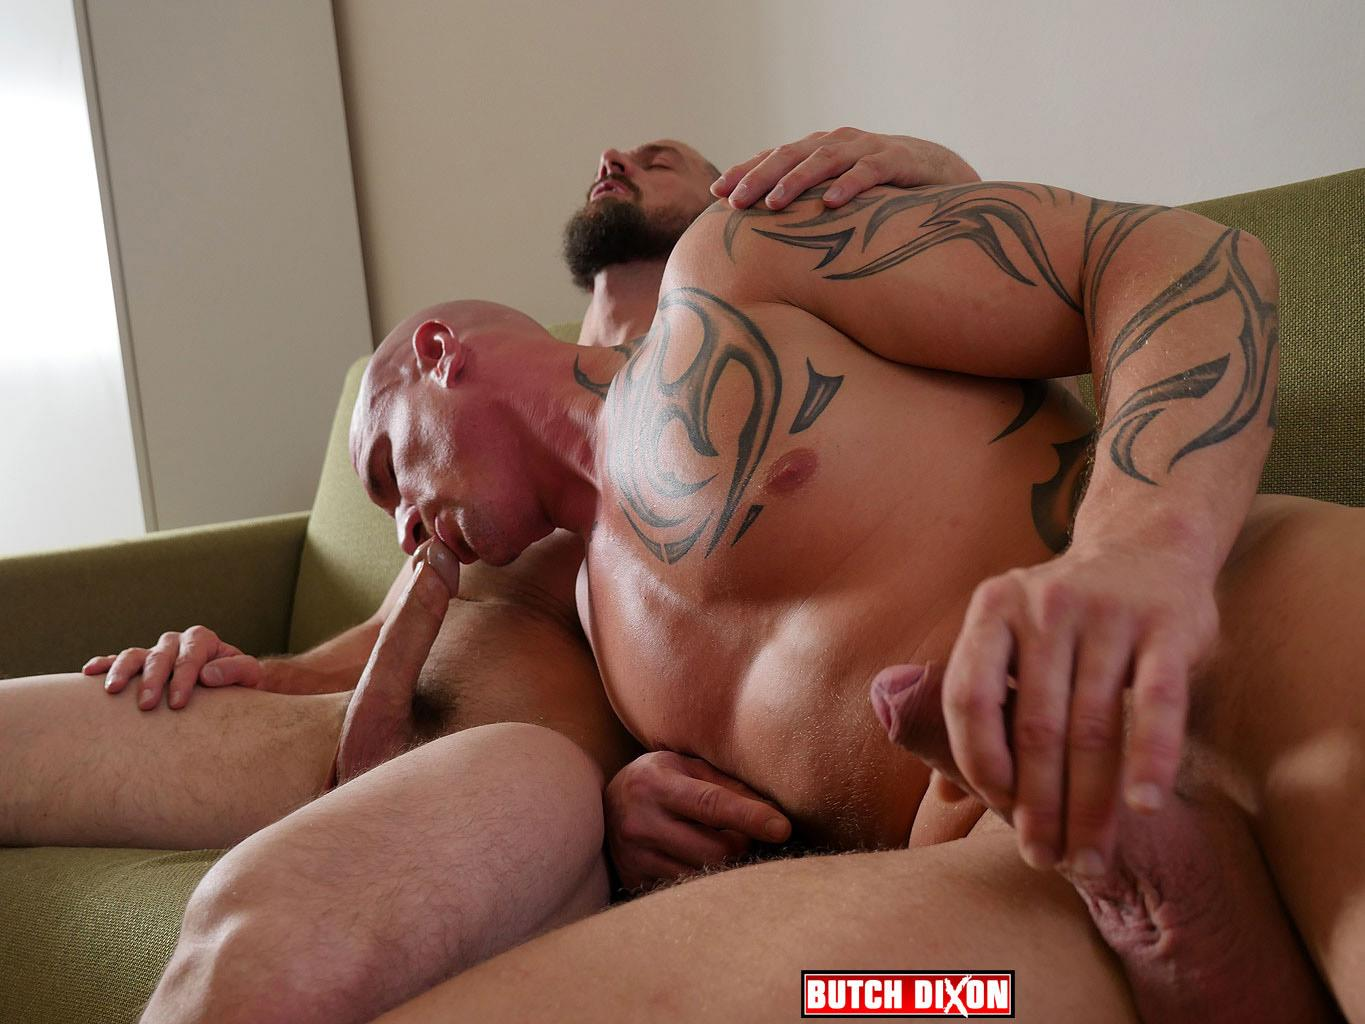 Butch Dixon Erik Lenn and Mike Bourne Masculine Guys Fucking Bareback Amateur Gay Porn 08 Beefy Masculine Guys Fucking Bareback With A Big Uncut Cock